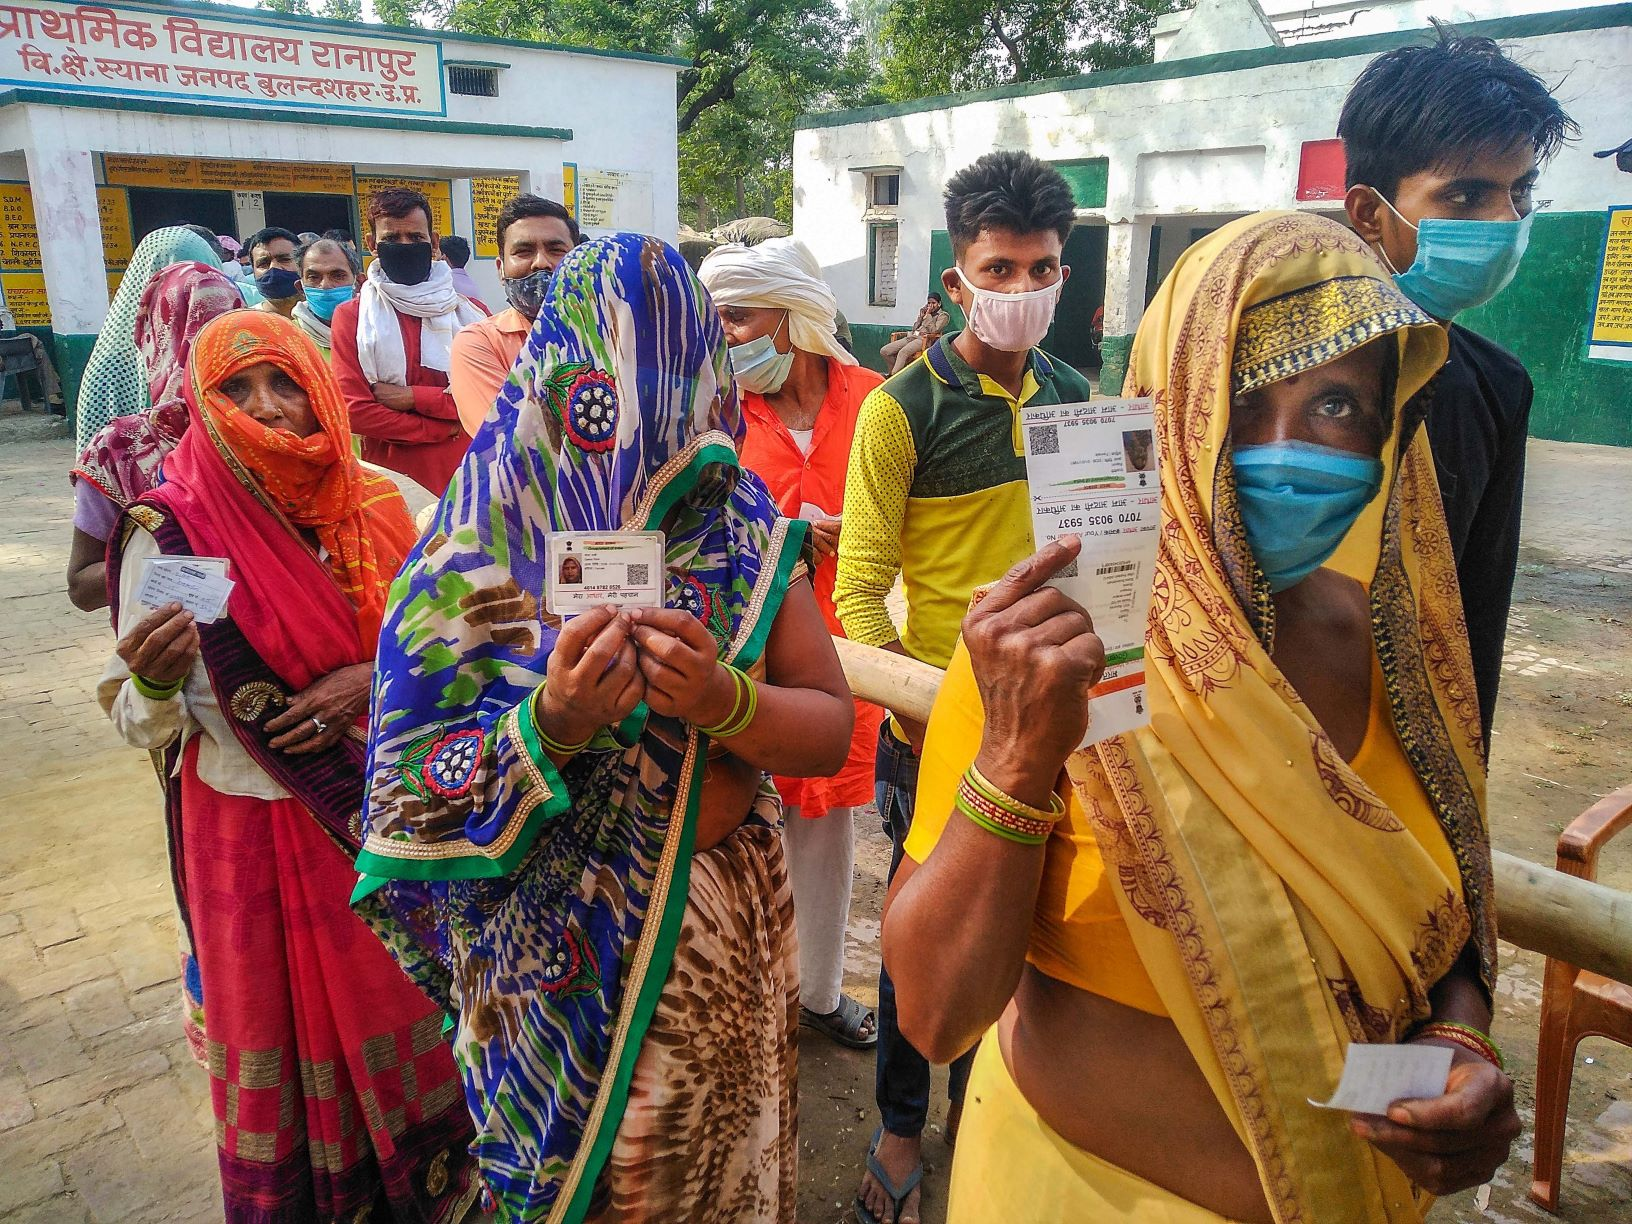 Bulandhsahar: Women wait in a queue to cast their vote for UP Pachayat Election at a polling station in a Ranapur village of Bulandshahar, Thursday, April 29,2021. (PTI Photo)(PTI04 29 2021 000114B)